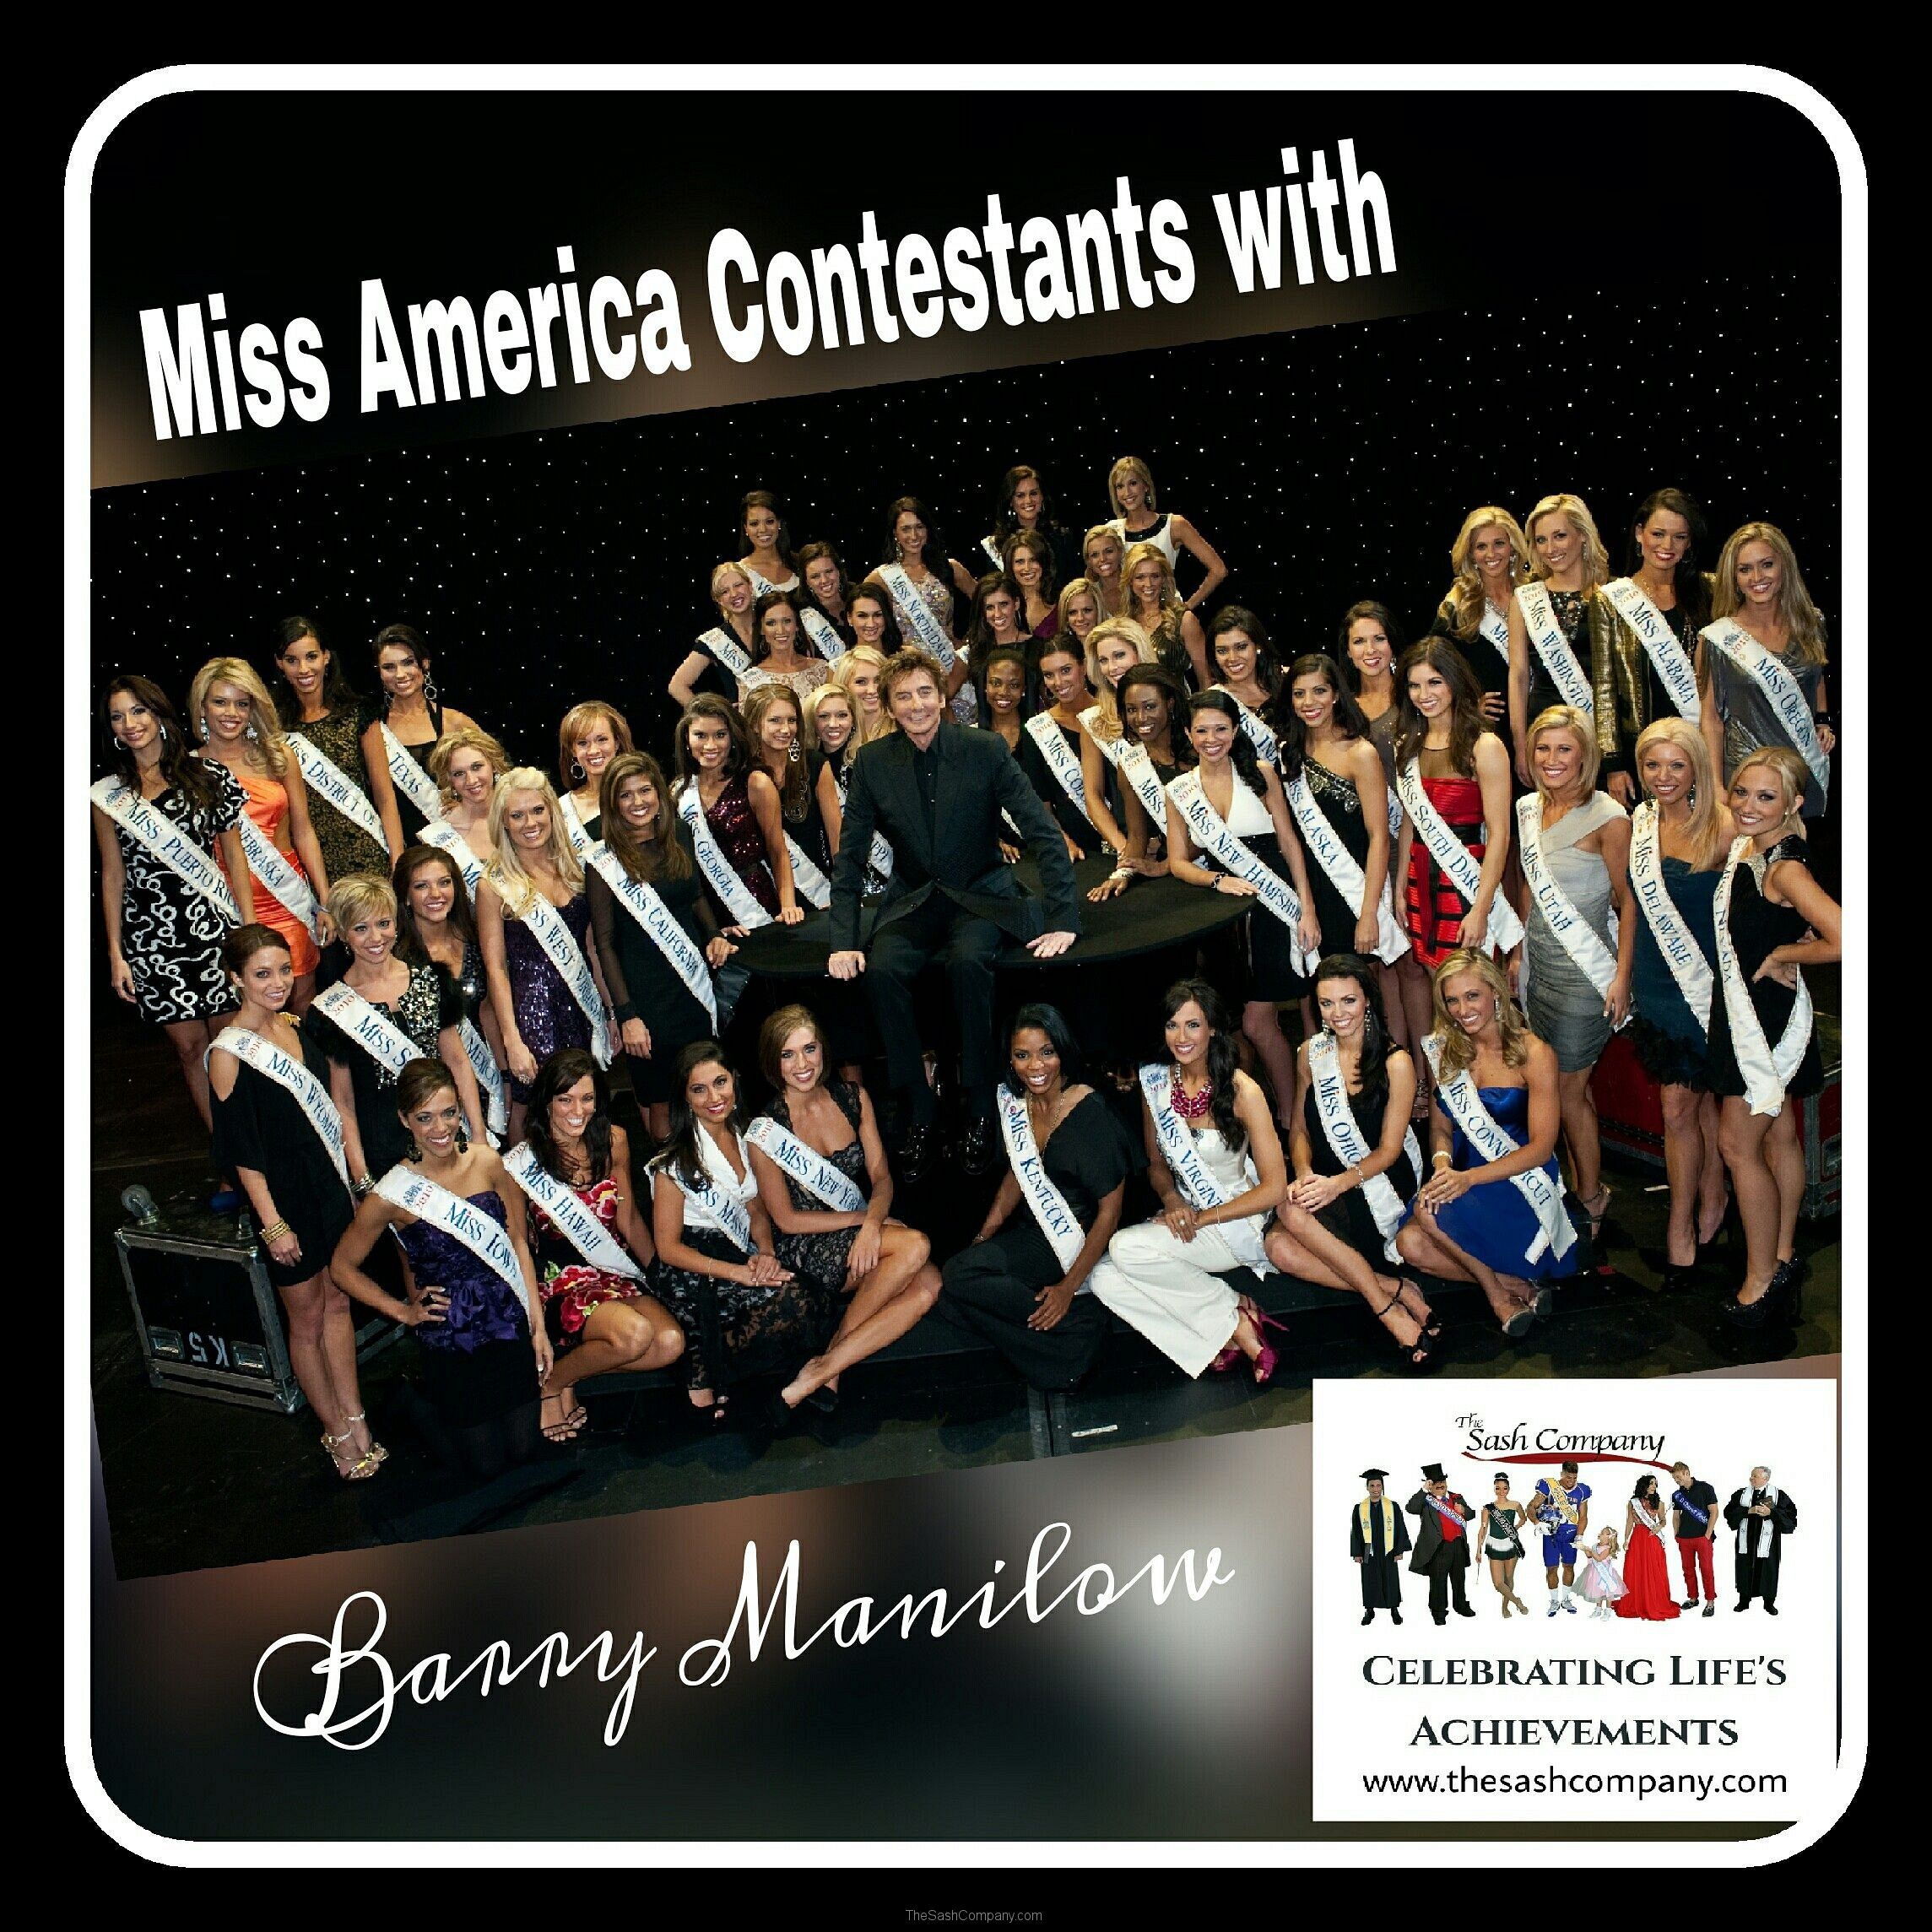 Miss America Contestants with Barry Manilow